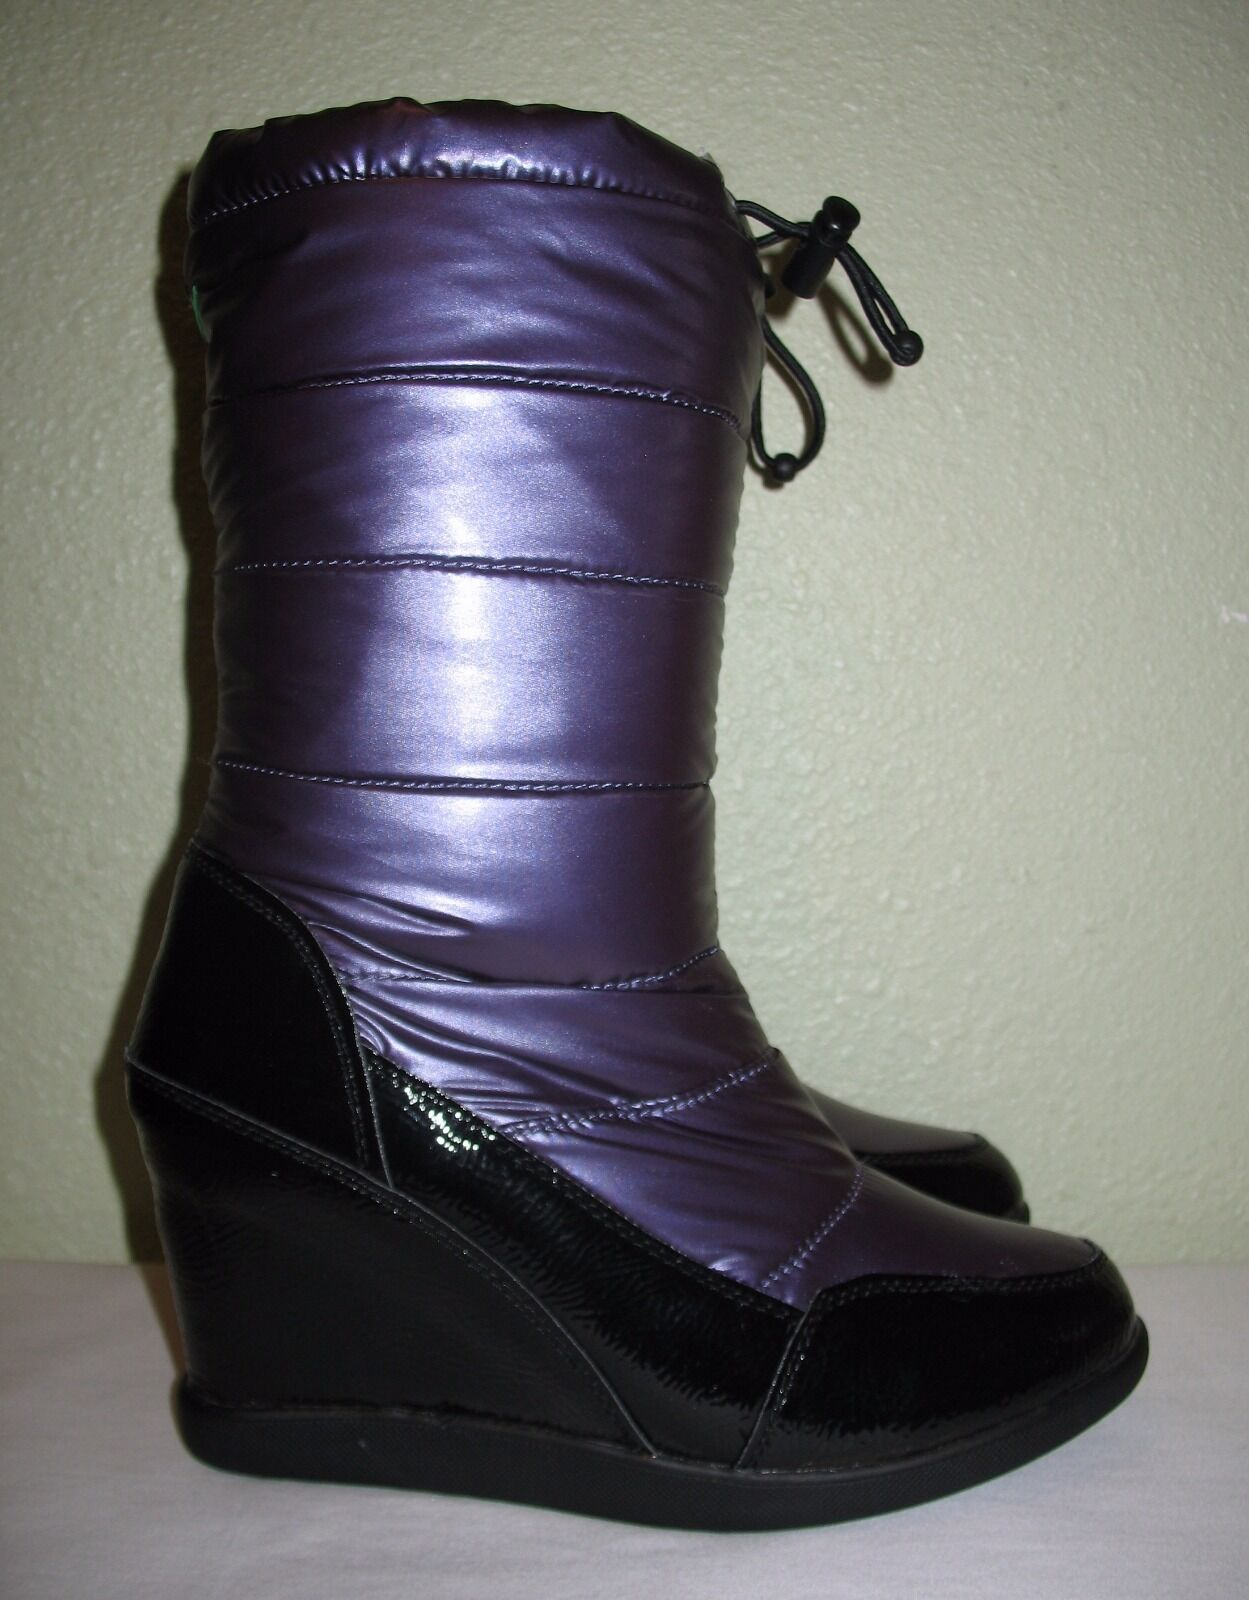 WOMENS PURPLE COUGAR SNOW RAIN WINTER WATERPROOF WEDGE BOOTS US 11